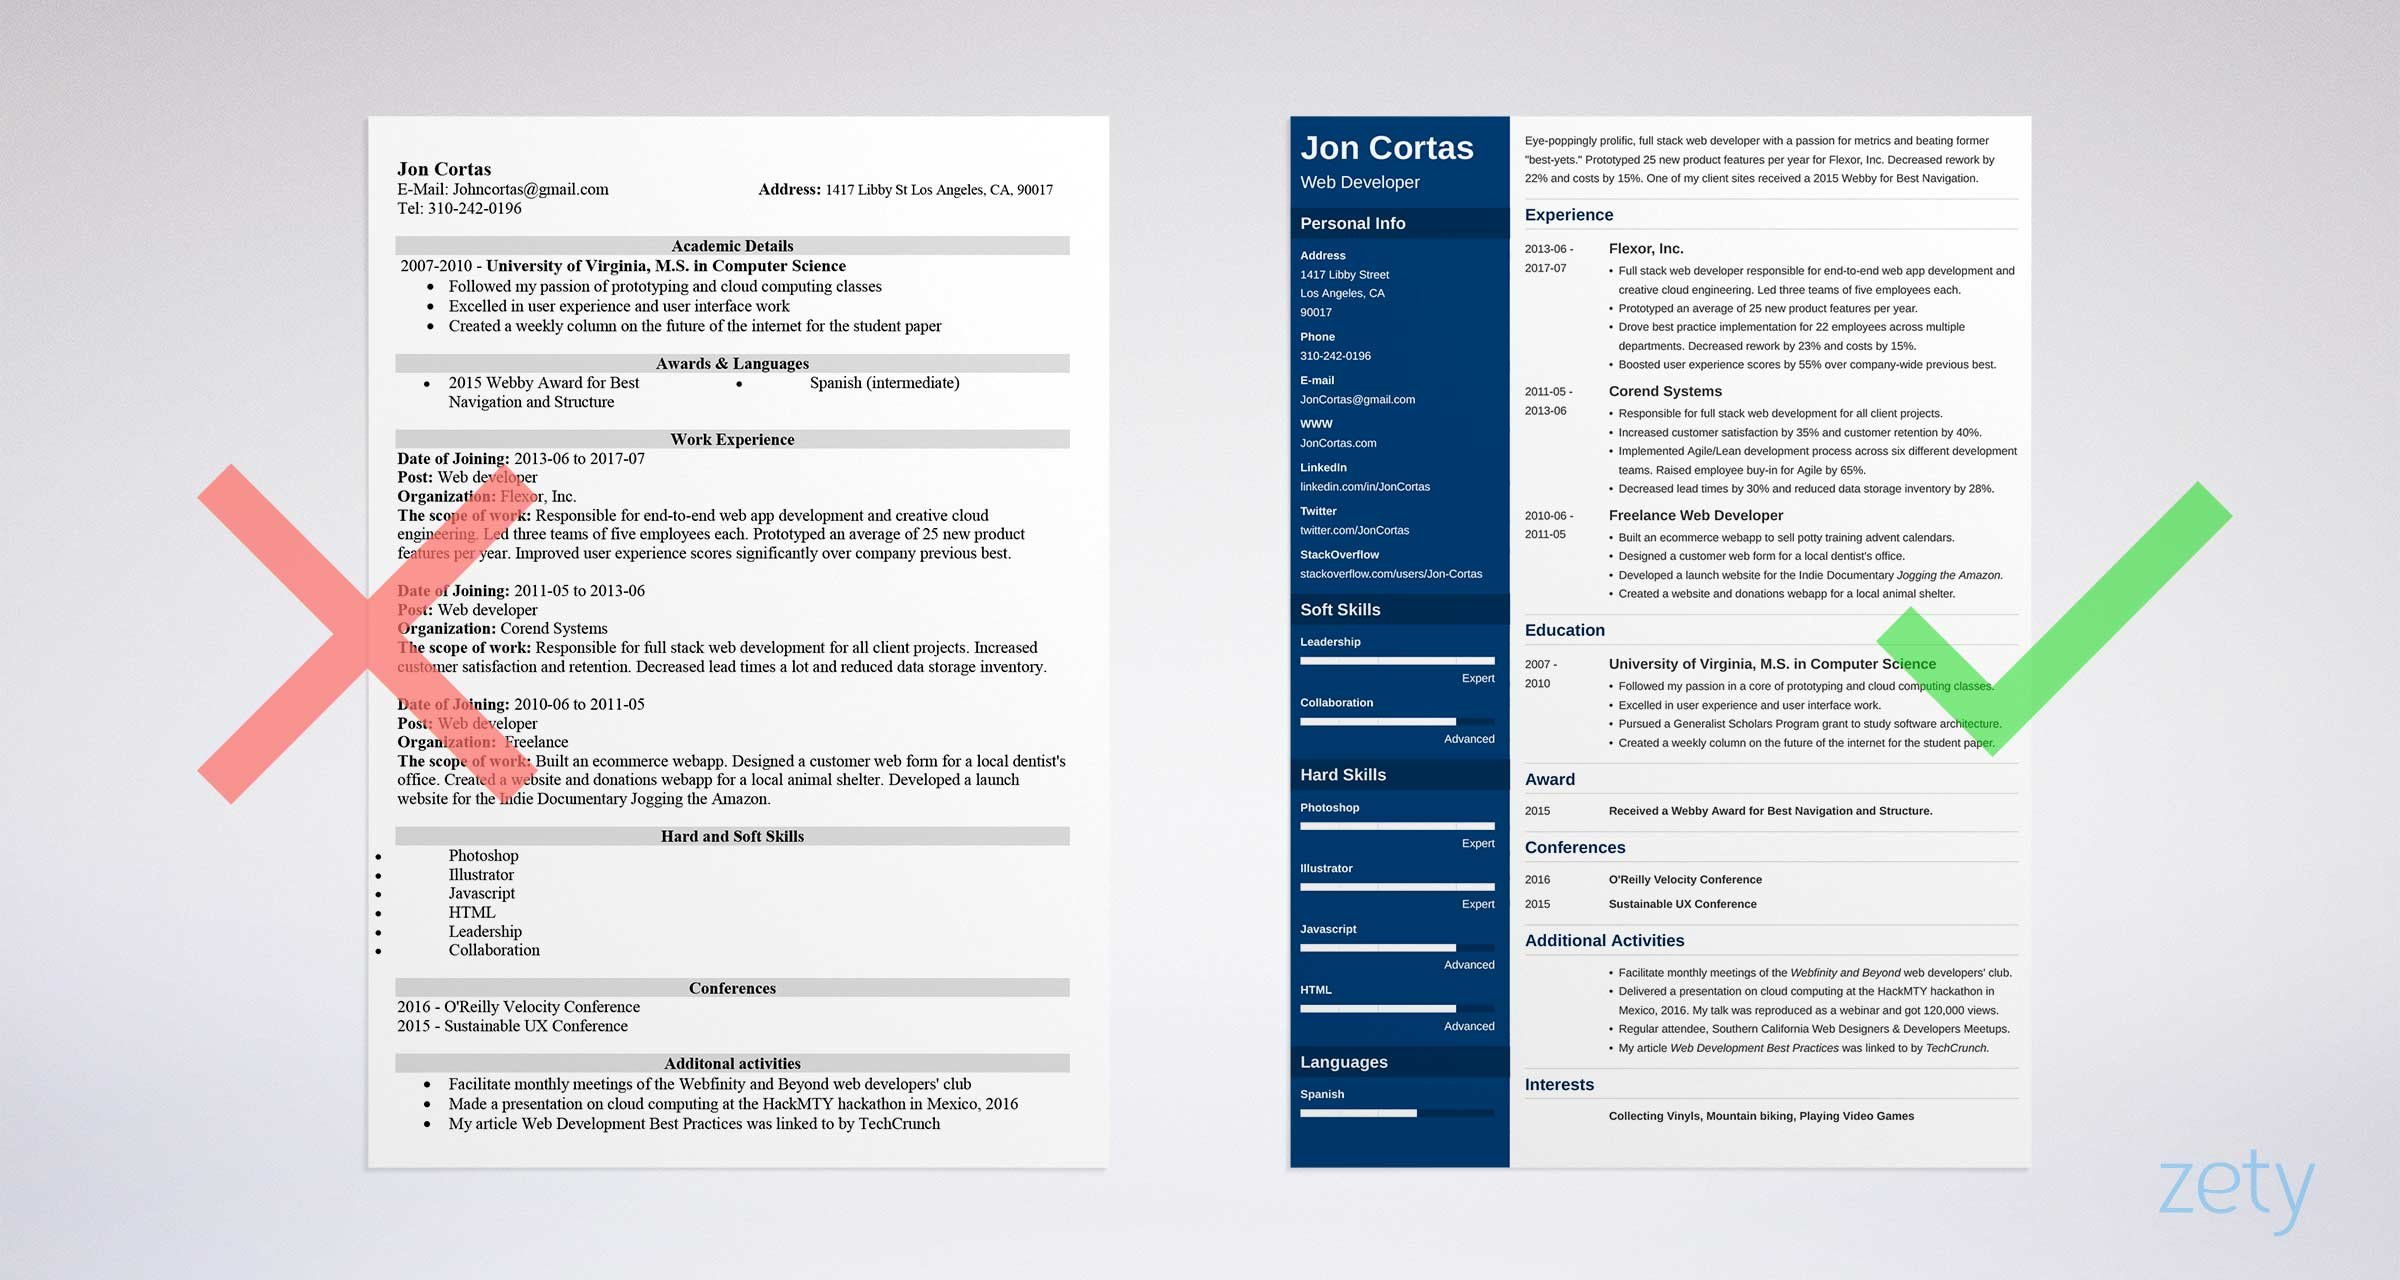 How Long Should A Resume Be? Ideal Resume Length For 2019 [+Tips]